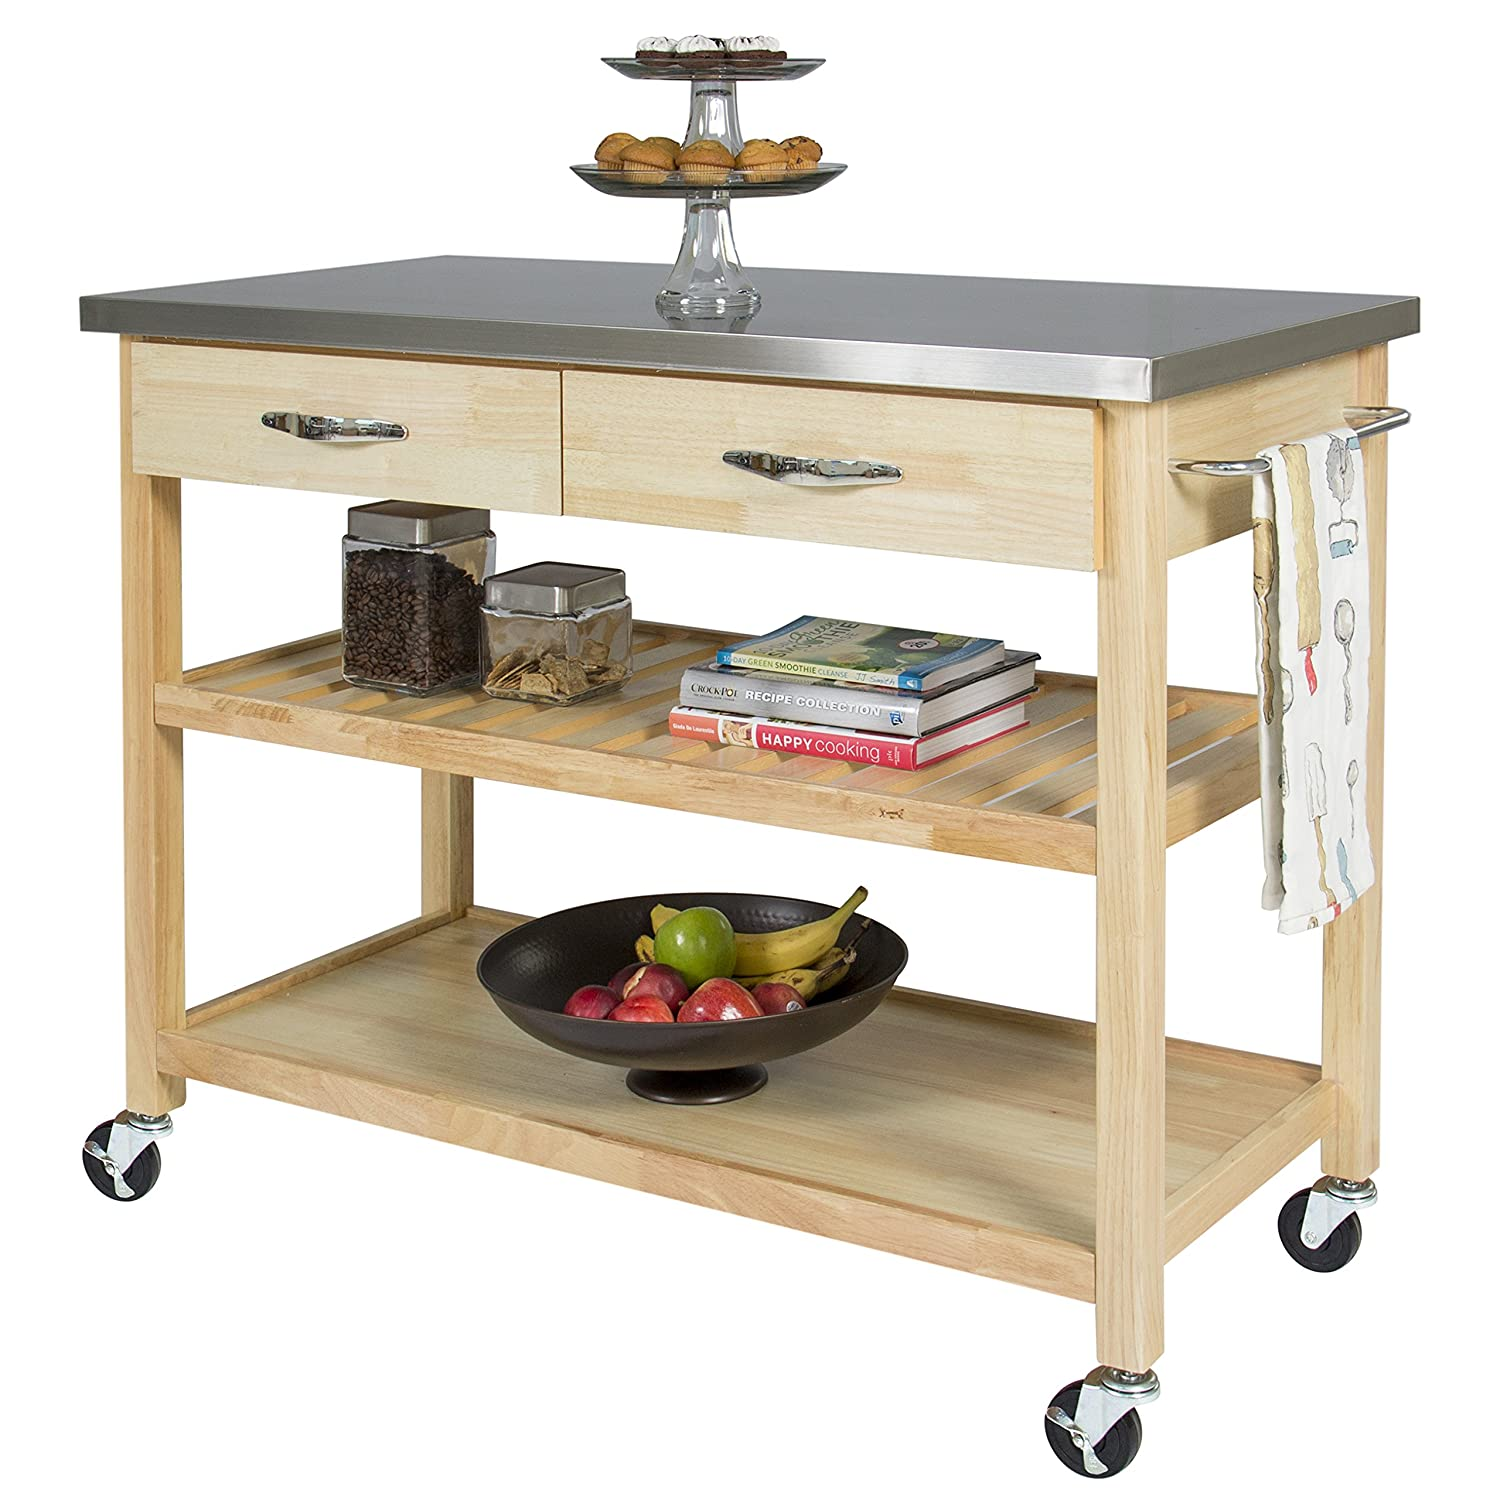 Exceptionnel Amazon.com   Best Choice Products Natural Wood Mobile Kitchen Island Utility  Cart With Stainless Steel Top Restaurant   Kitchen Islands U0026 Carts